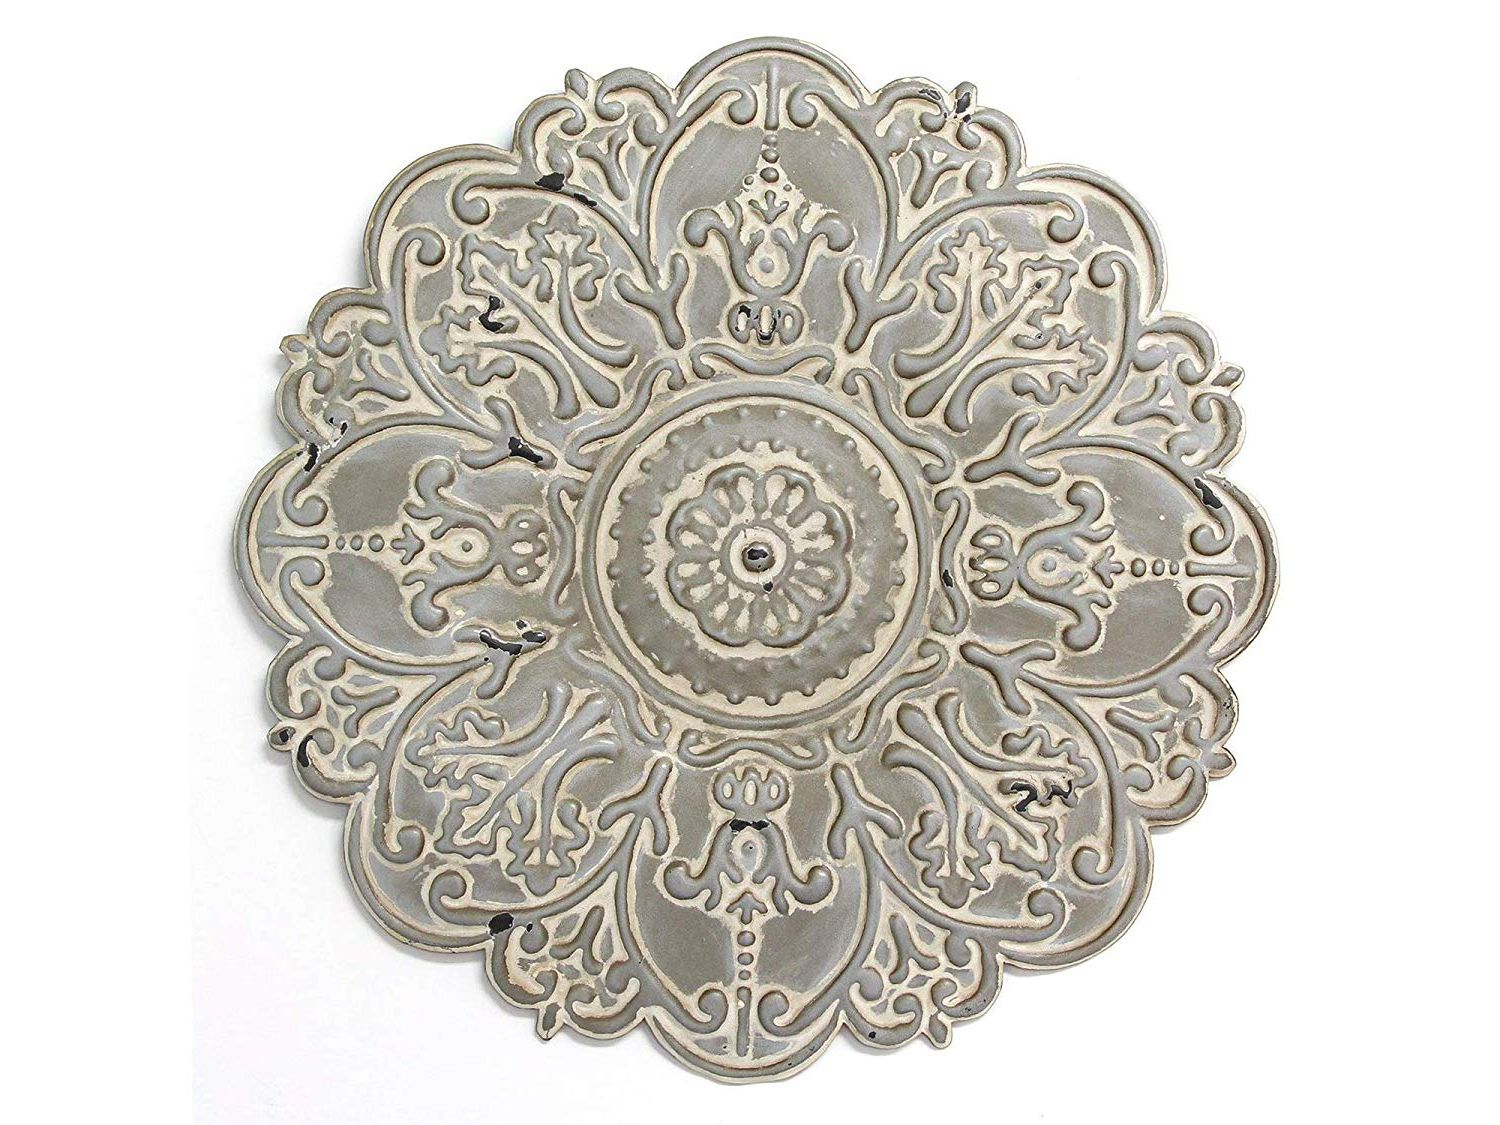 Trendy Small Medallion Wall Decor Intended For Amazon: Strаttоn Hоmе Dеcоr Home Decor Décor S11565 Small (View 18 of 20)